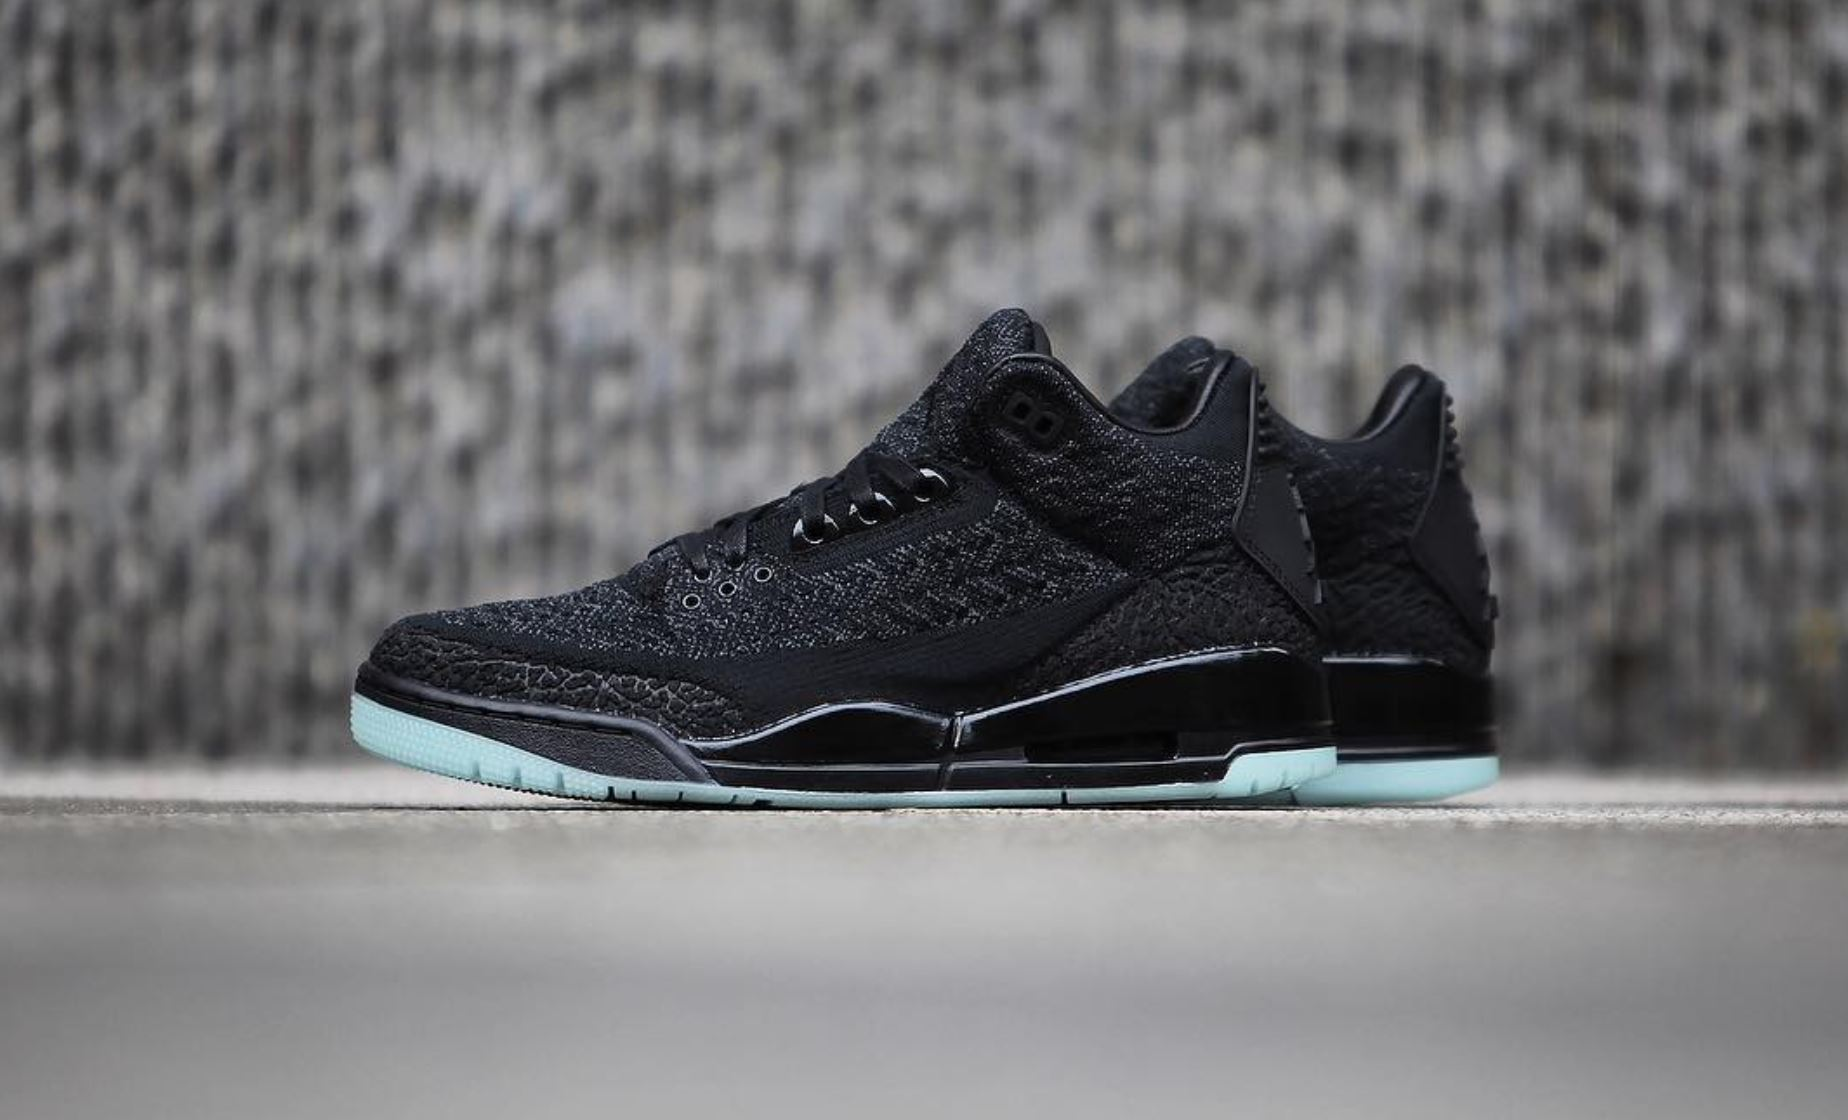 low priced 8ec13 47e52 Detailed Look at the Air Jordan 3 Flyknit - WearTesters